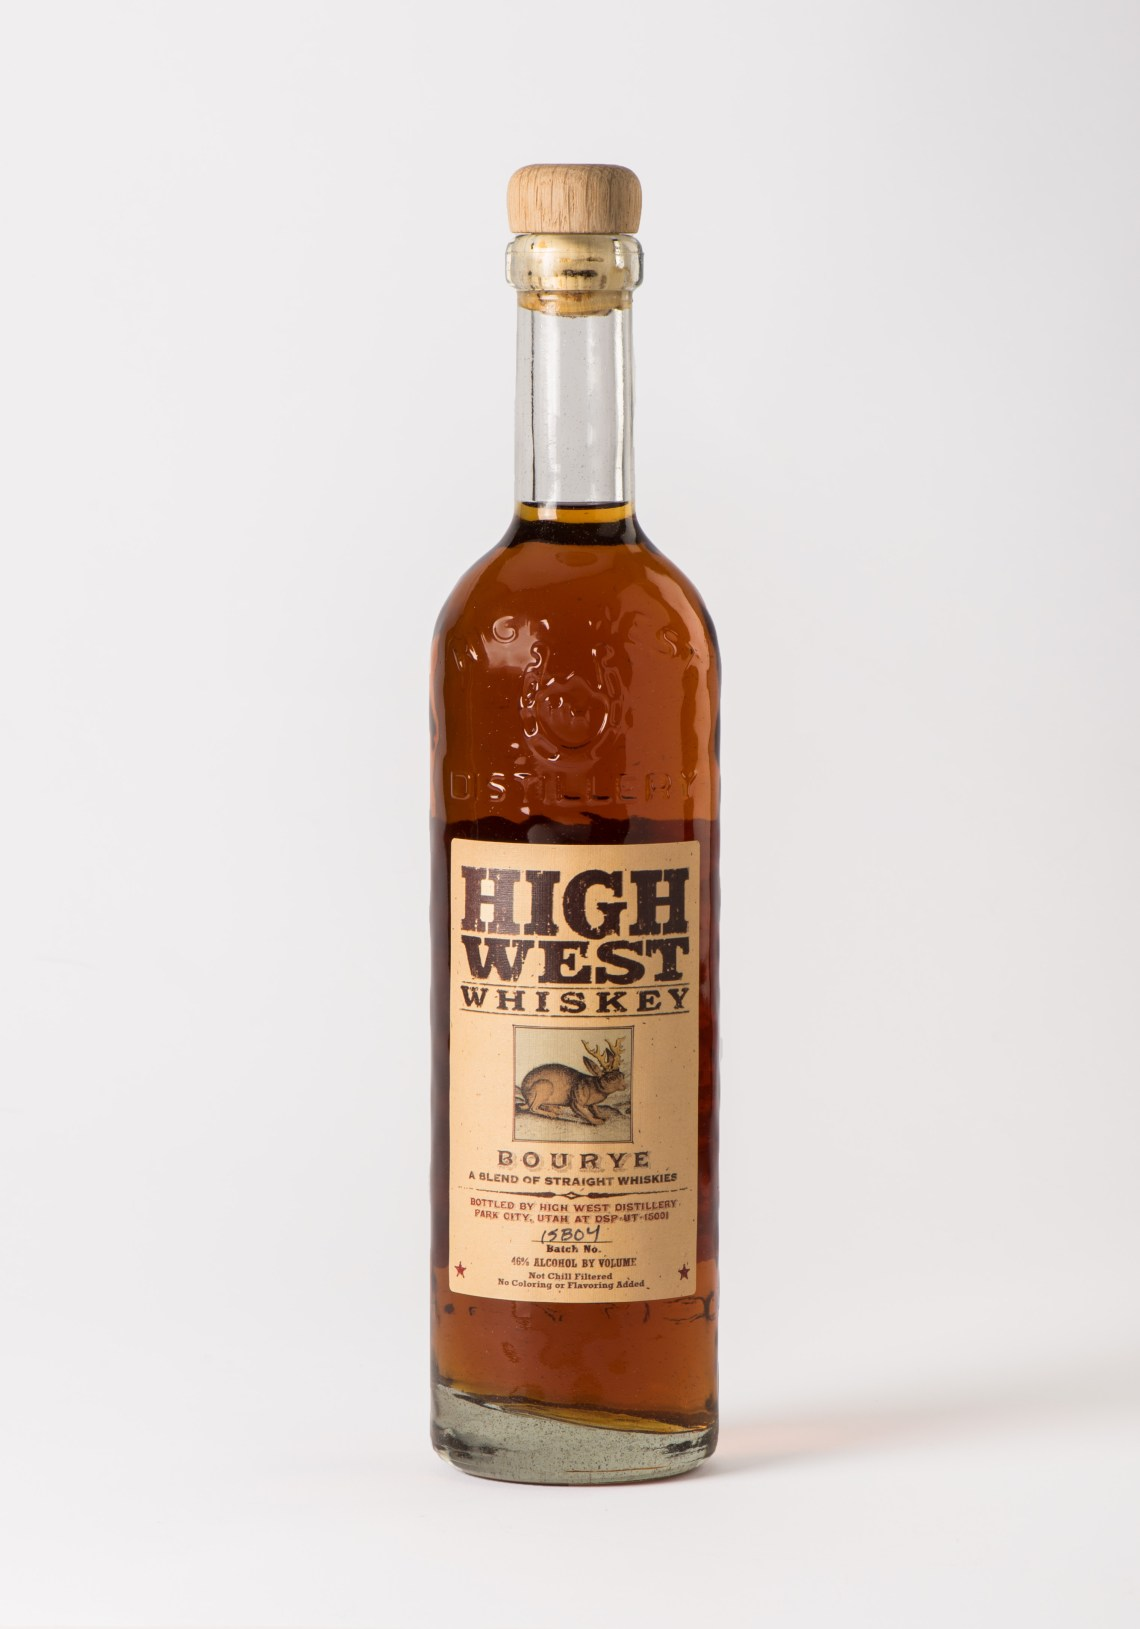 High West Bourye (2015)